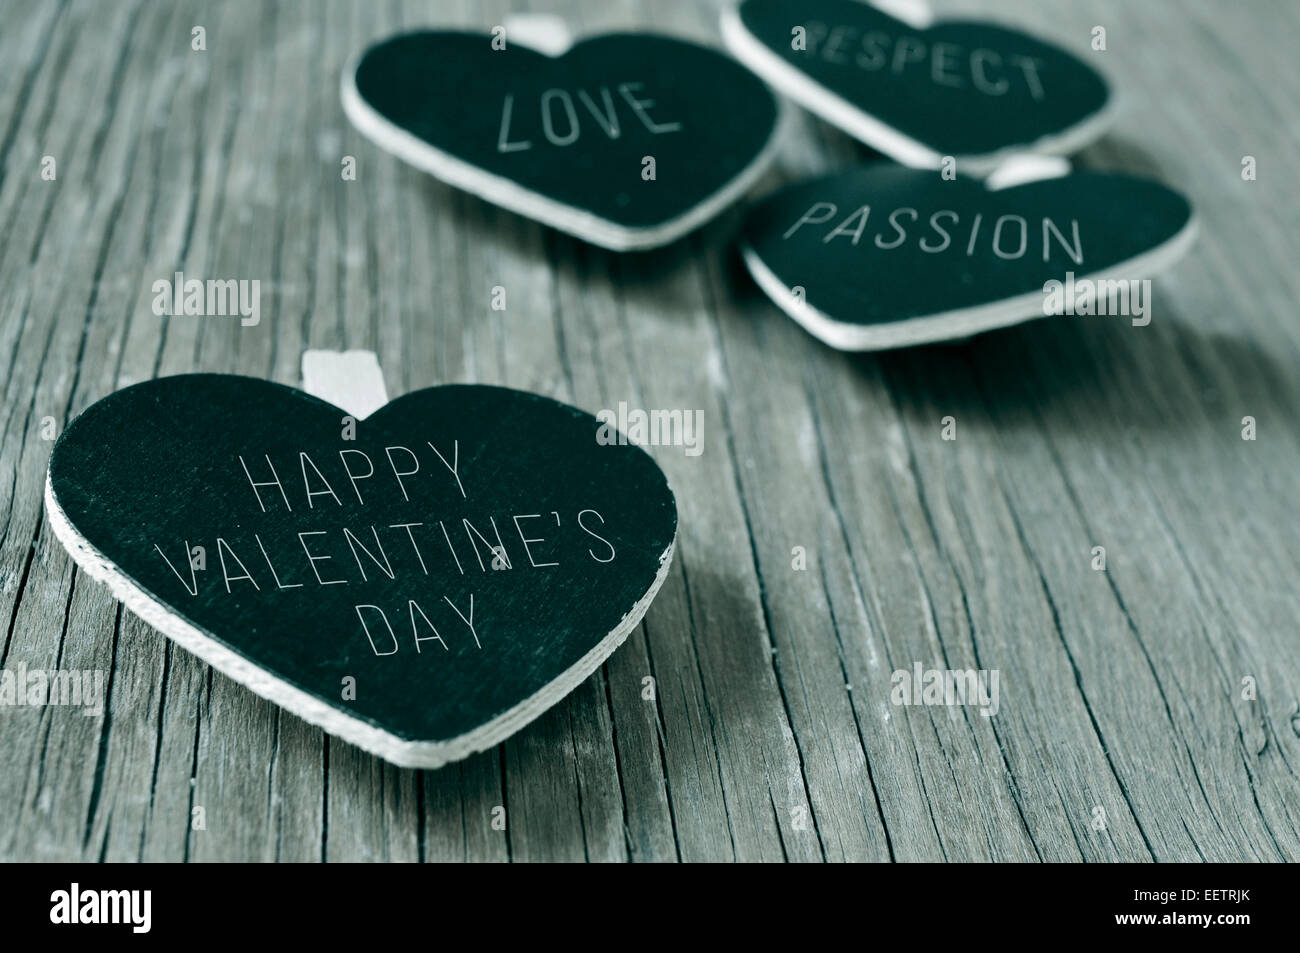 words love, respect and passion, and the sentence happy valentines day written in some heart-shaped chalkboards, - Stock Image